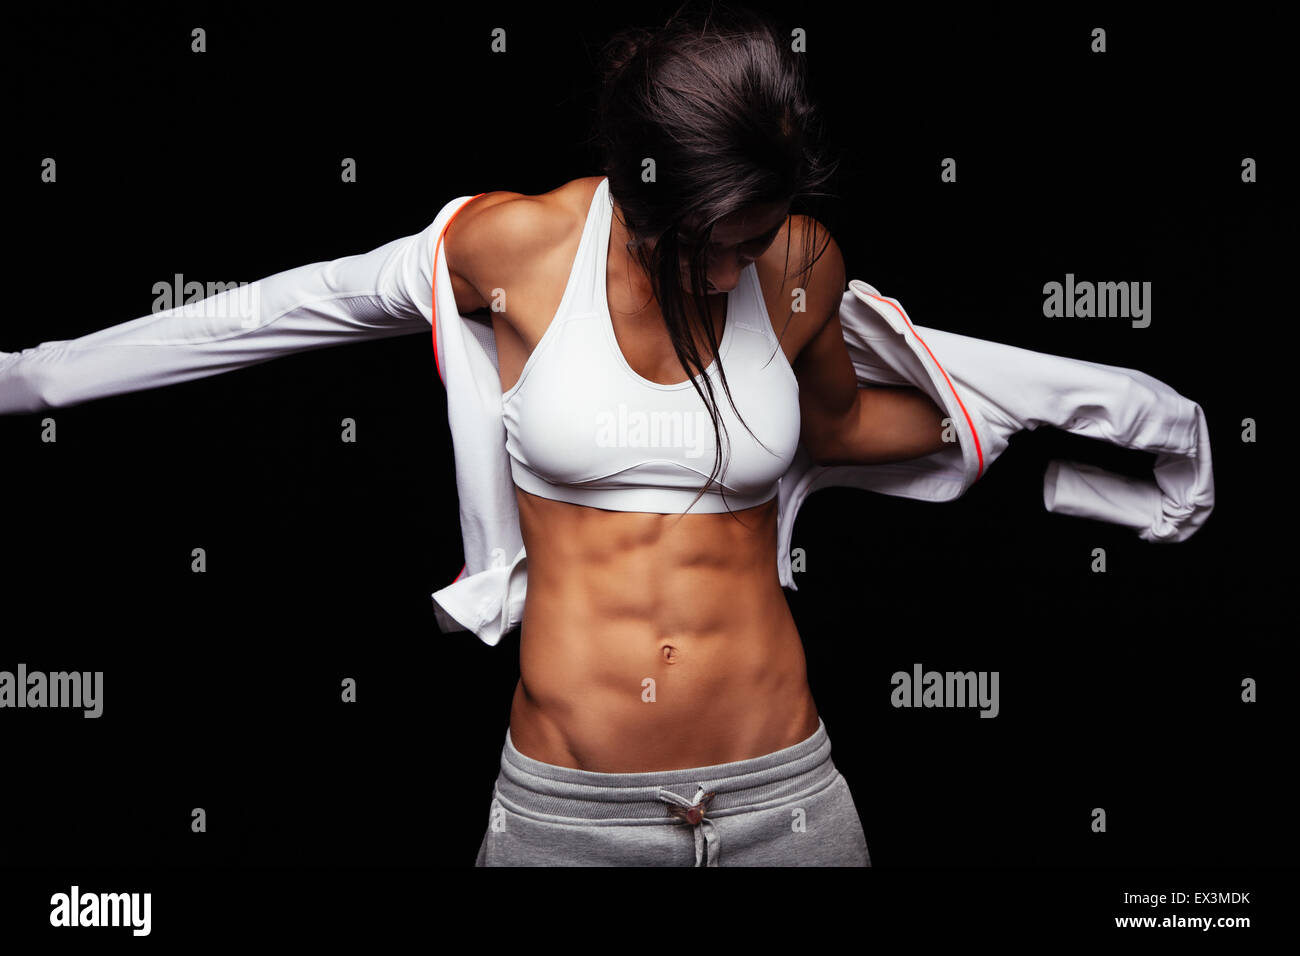 Image of muscular young woman wearing sports jacket. Getting ready for workout on black background - Stock Image